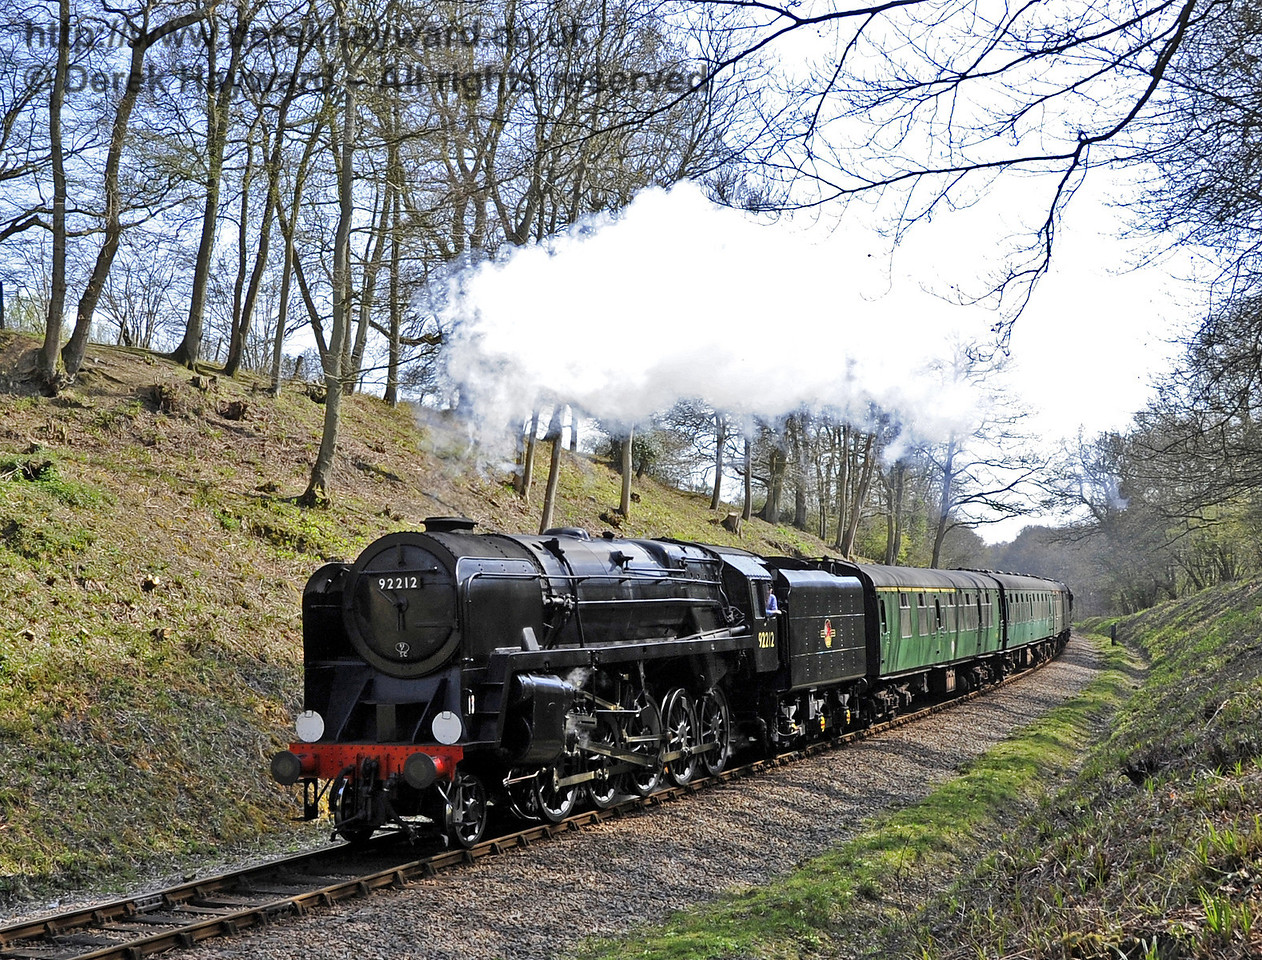 92212 approaches West Hoathly Tunnel.  06.04.2012  4326